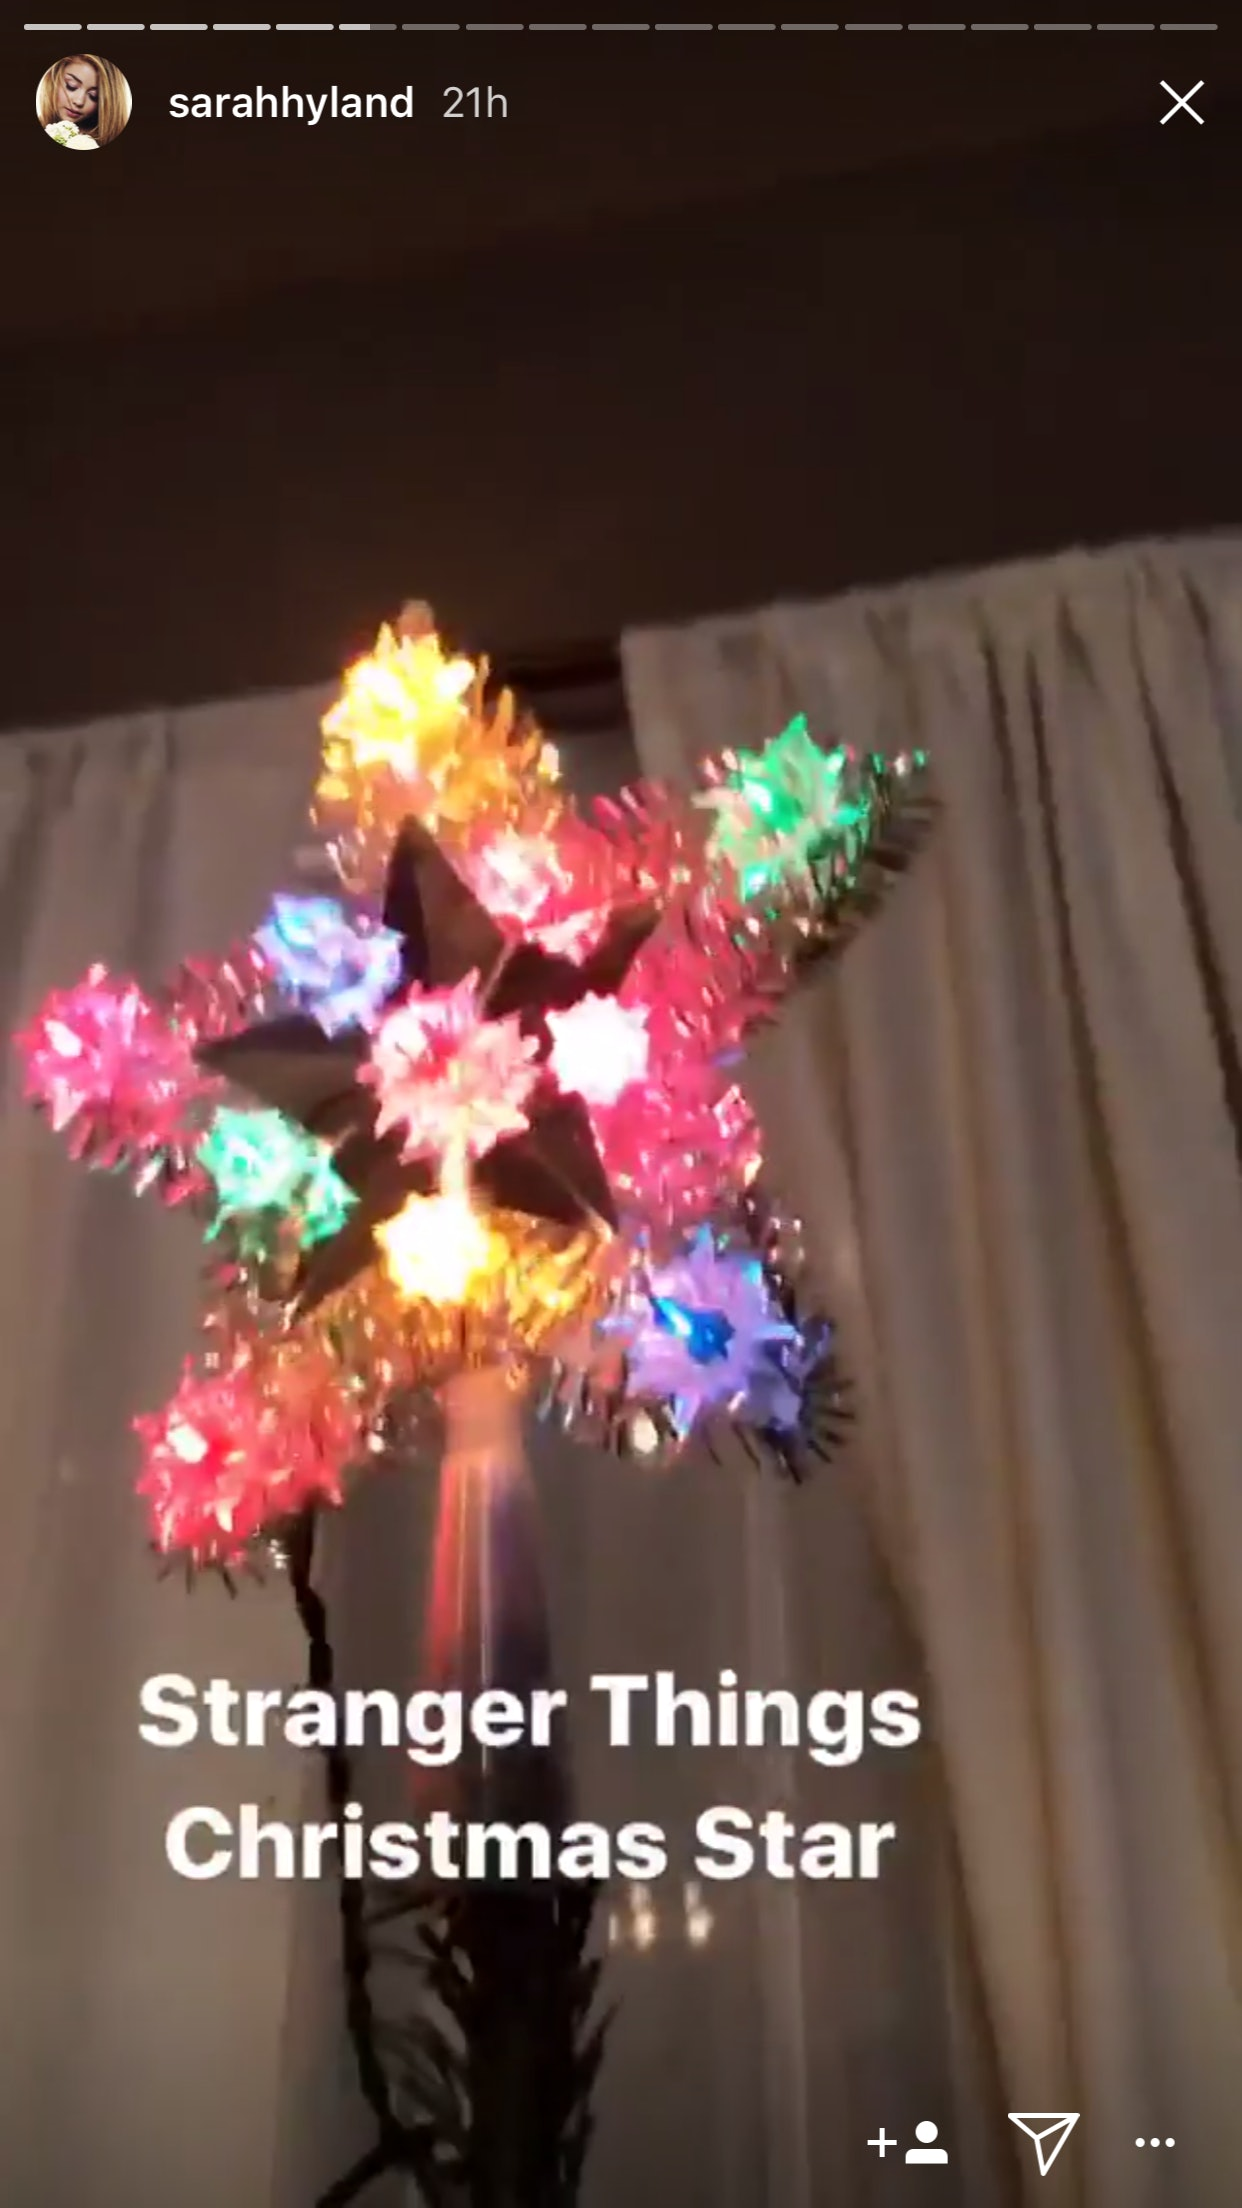 sarah hyland wells adams decorated their first christmas tree together the decorations will make you laugh - Stranger Things Christmas Decorations